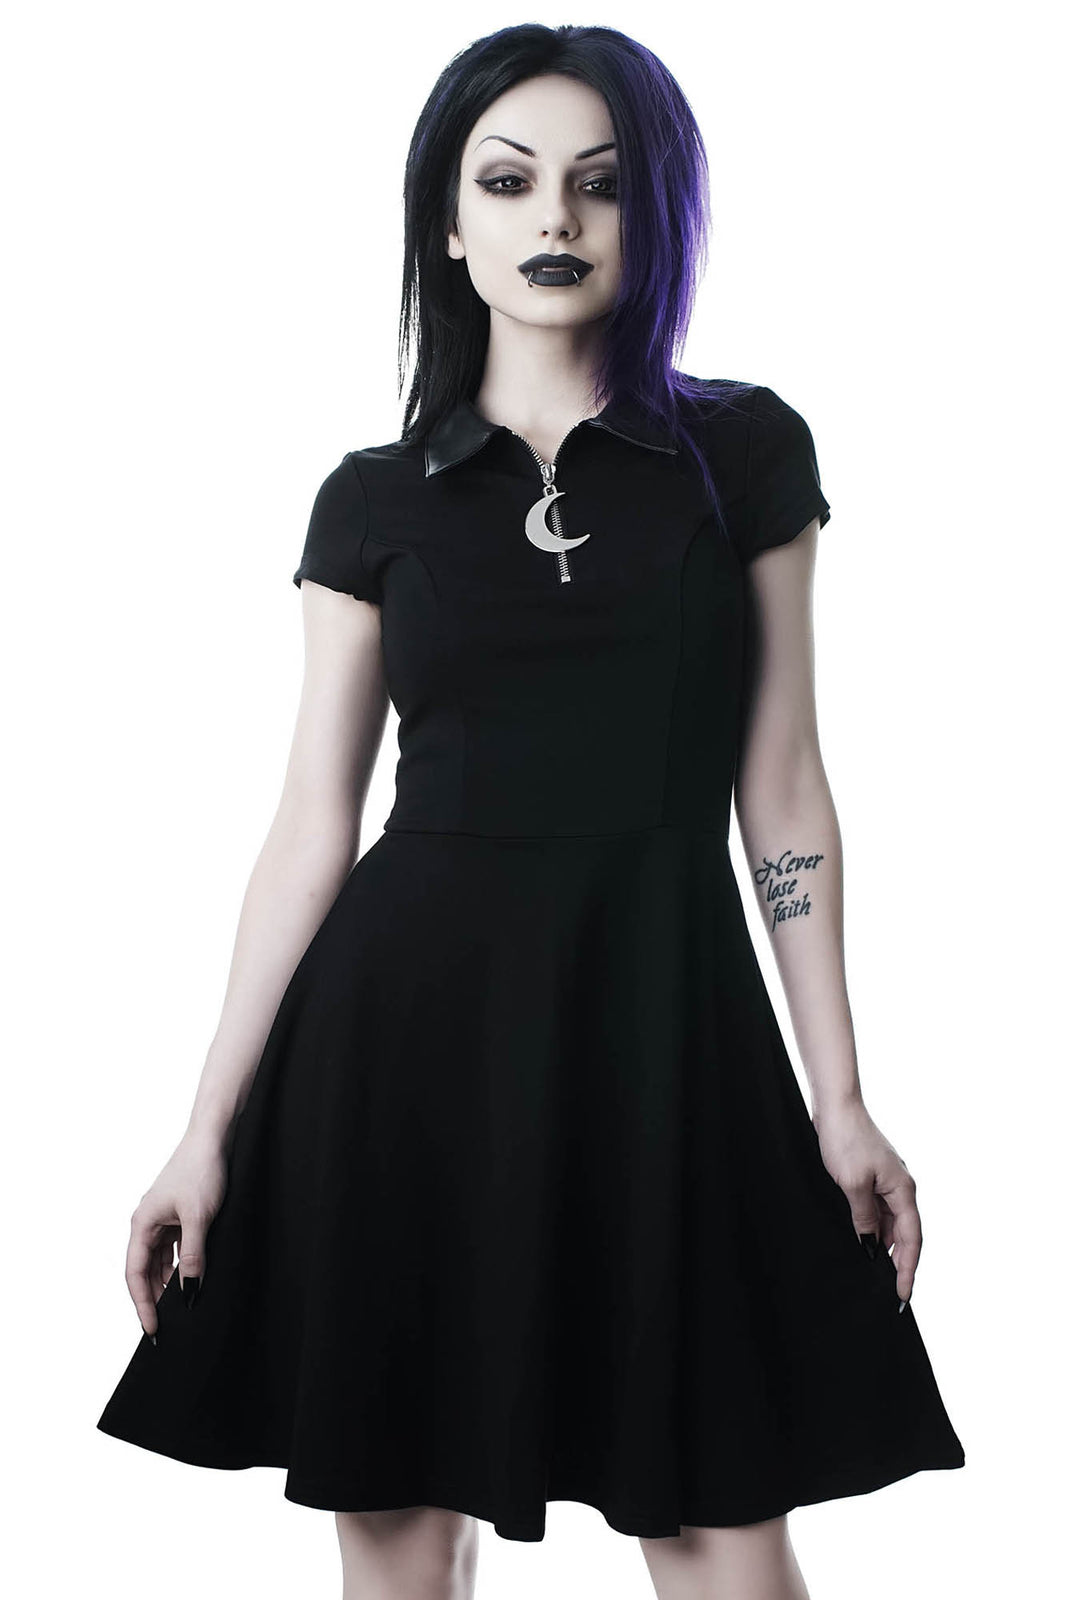 Coven Cutie Skater Dress